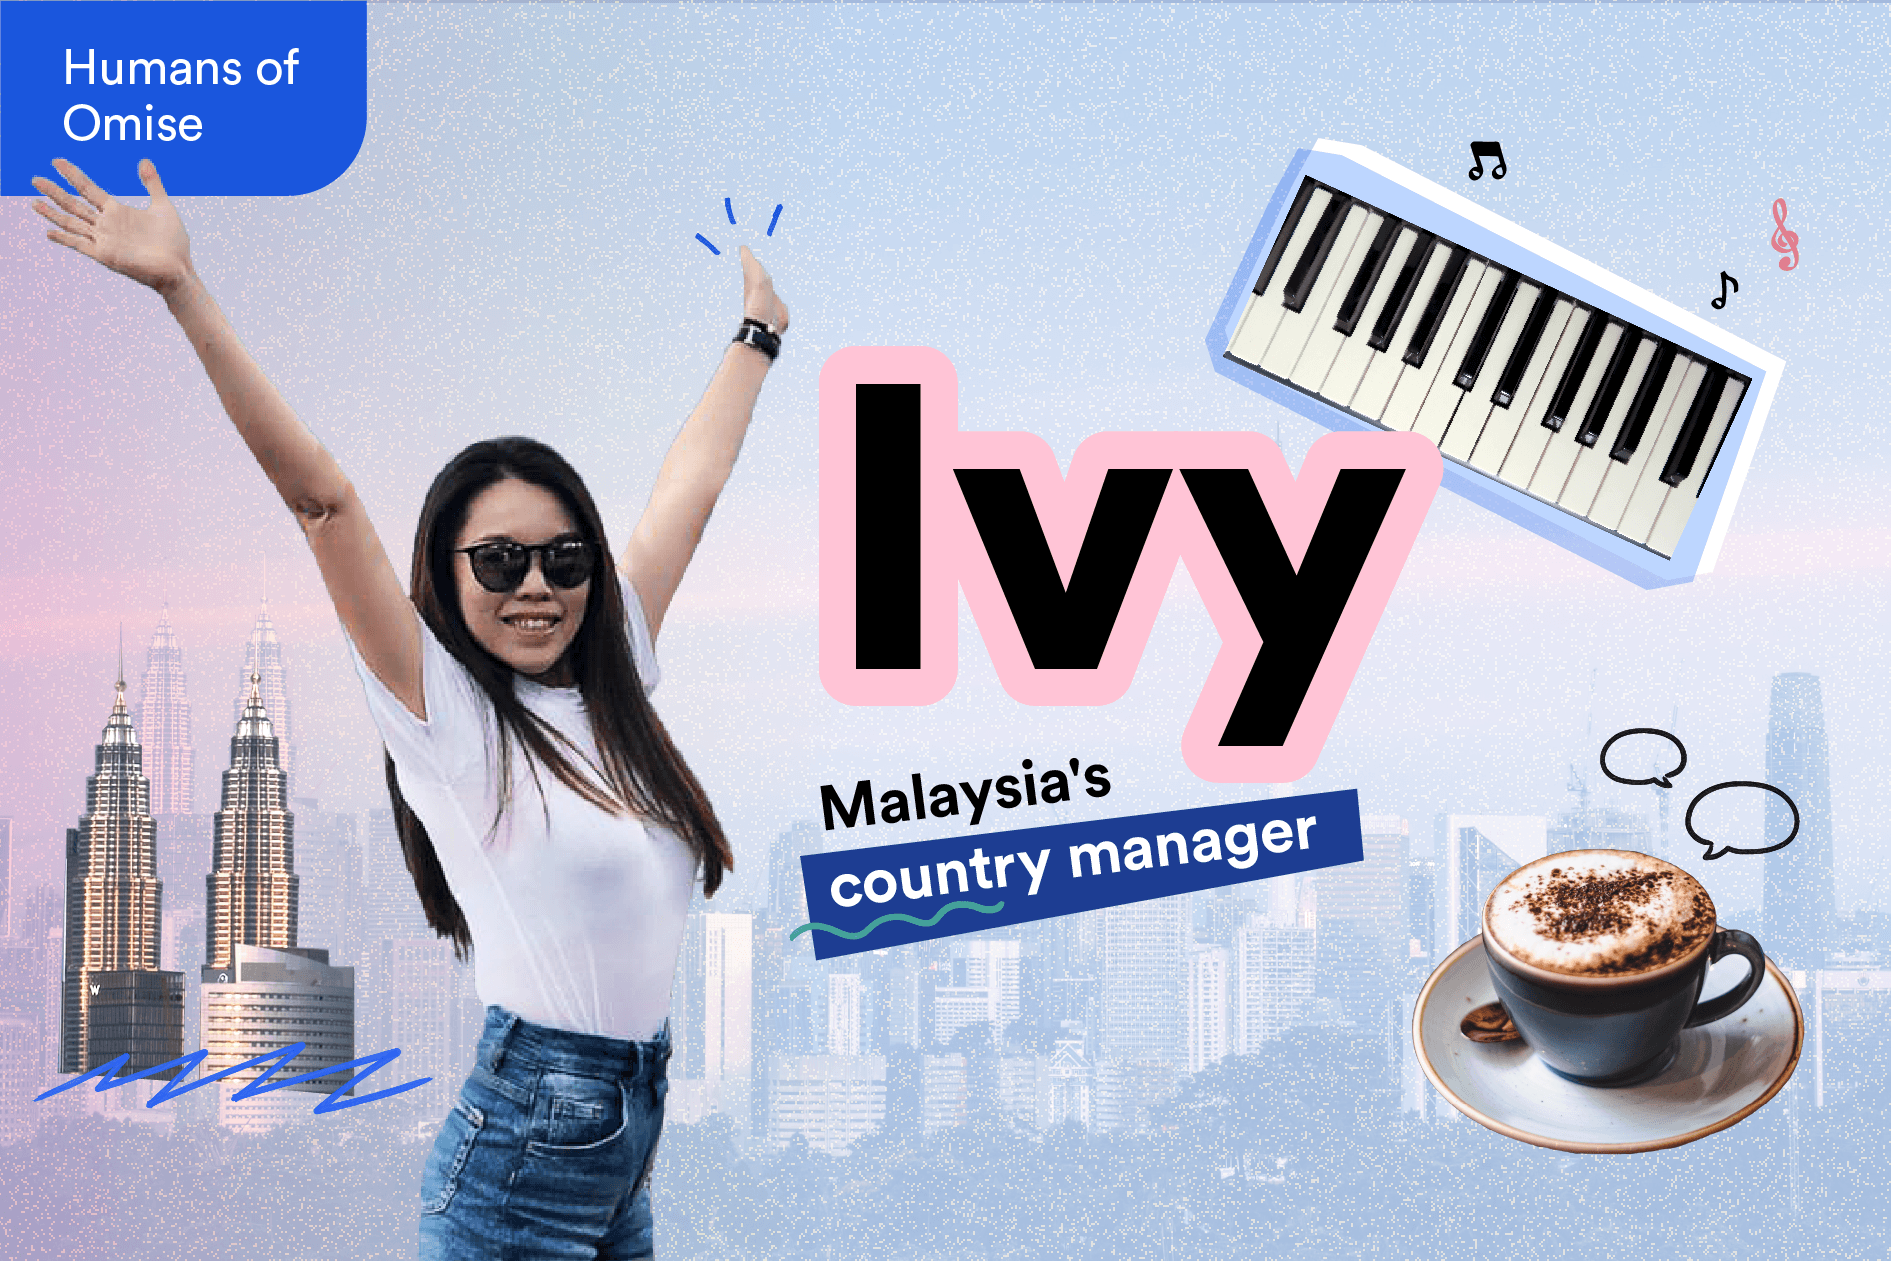 Omise Malaysia's country manager, Ivy Lee, shares stories on her career journey, career path change, and growth.